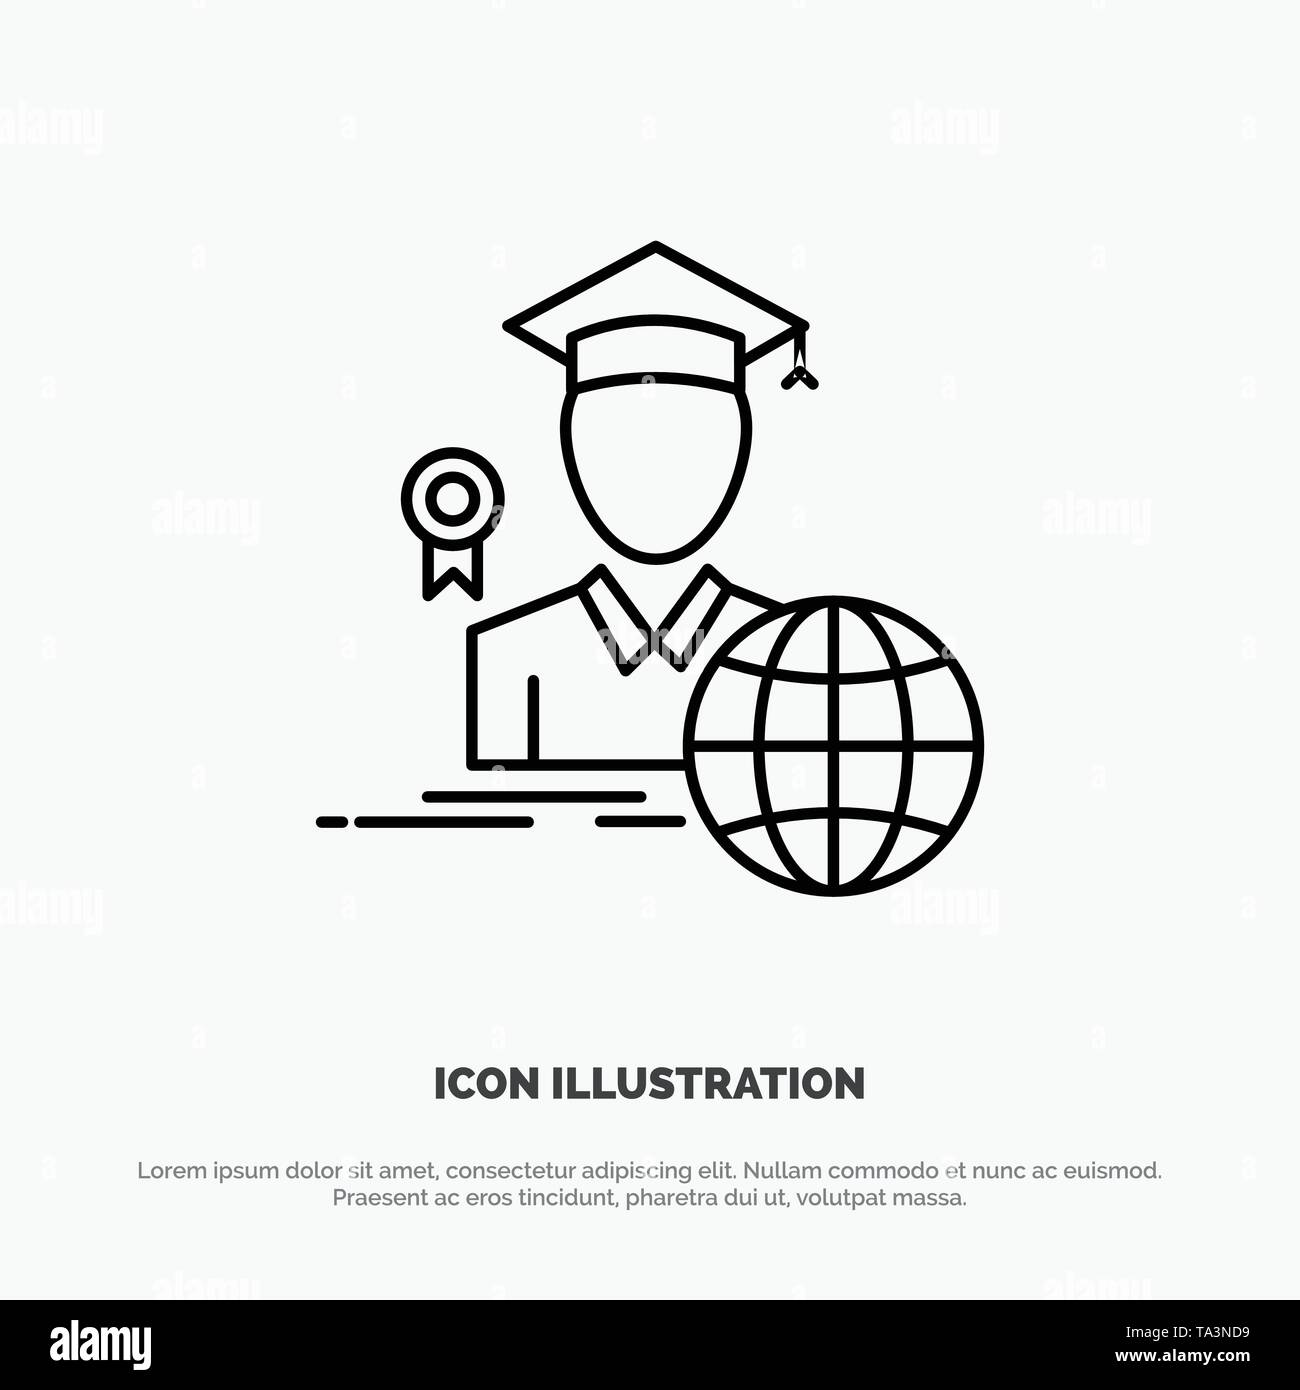 Graduation, Avatar, Graduate, Scholar Line Icon Vector - Stock Vector